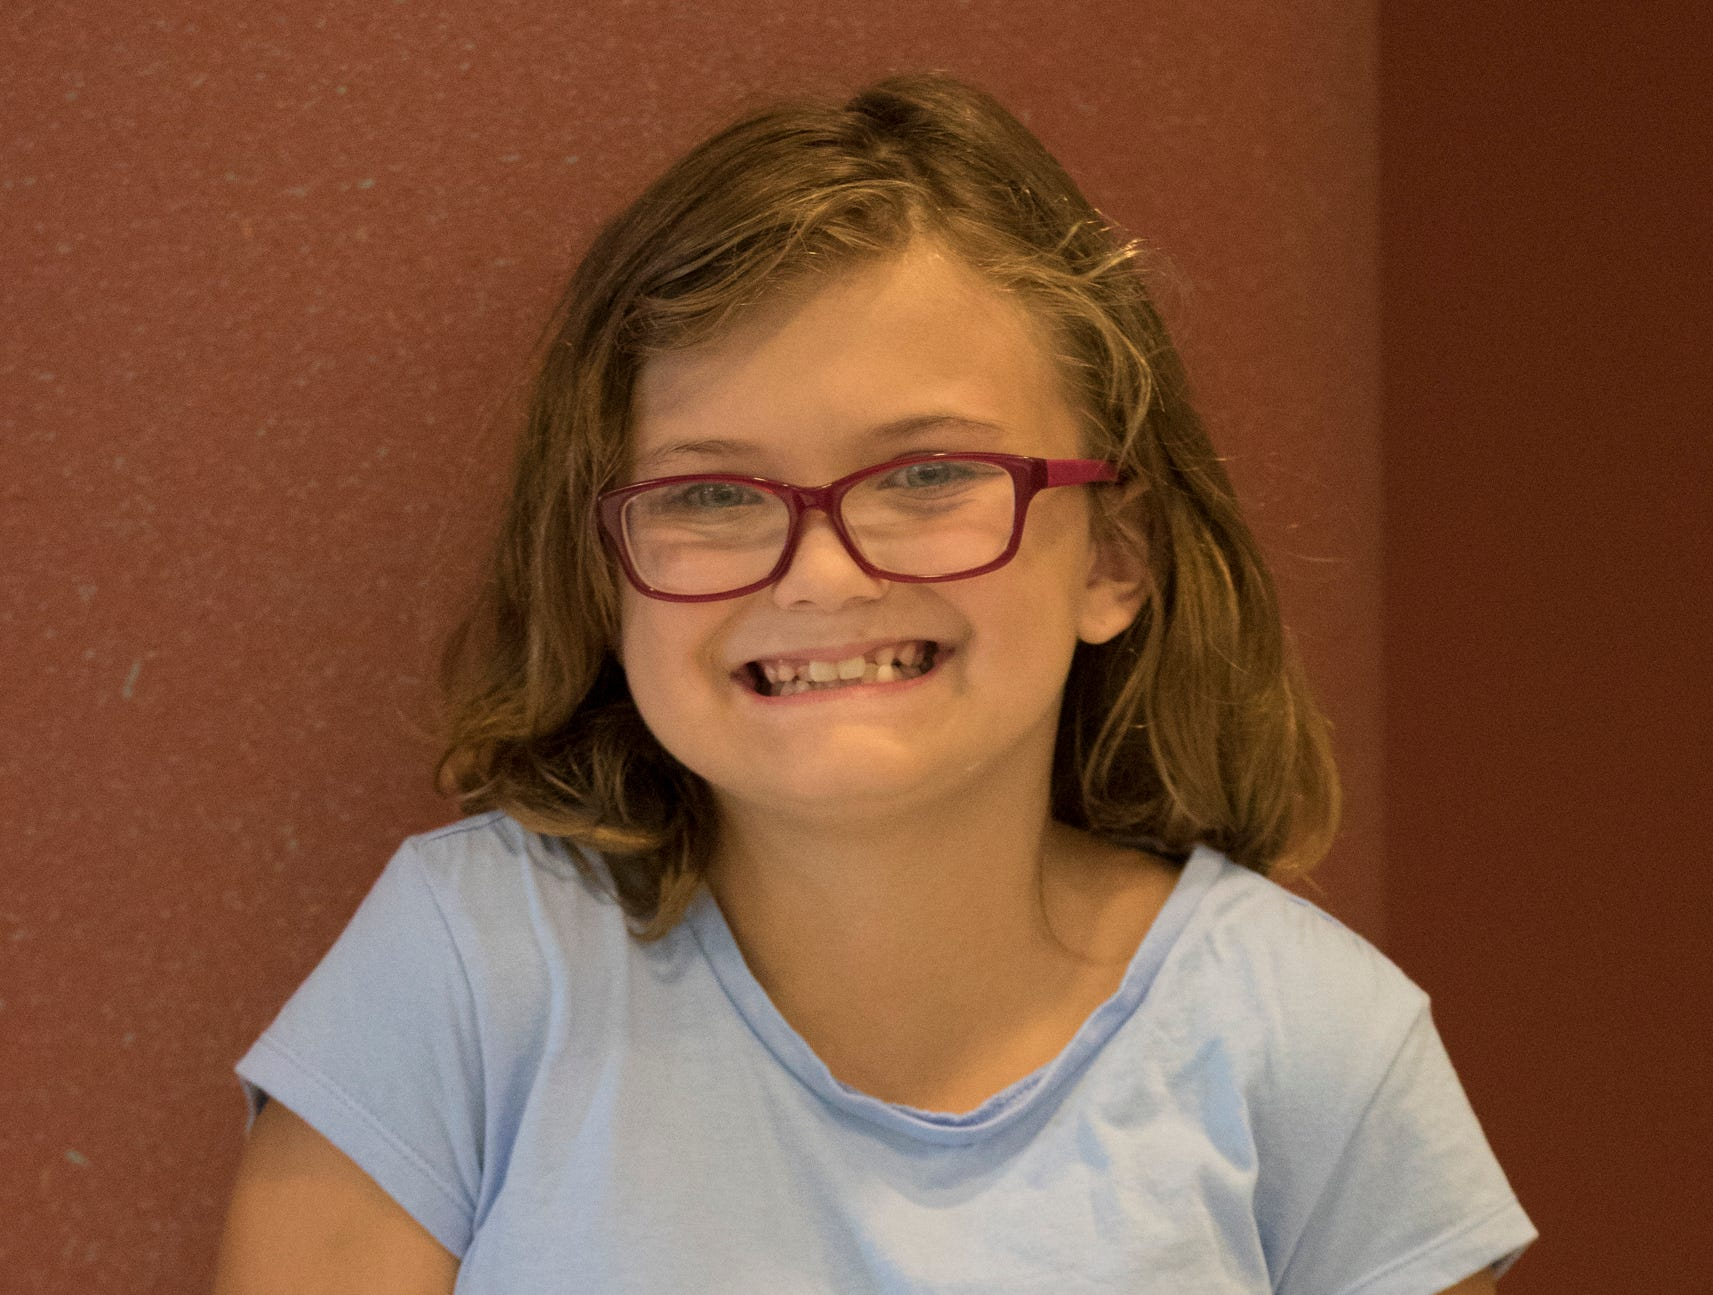 Madison Speakman, 11, Panther Power. Project: Pocket Pets